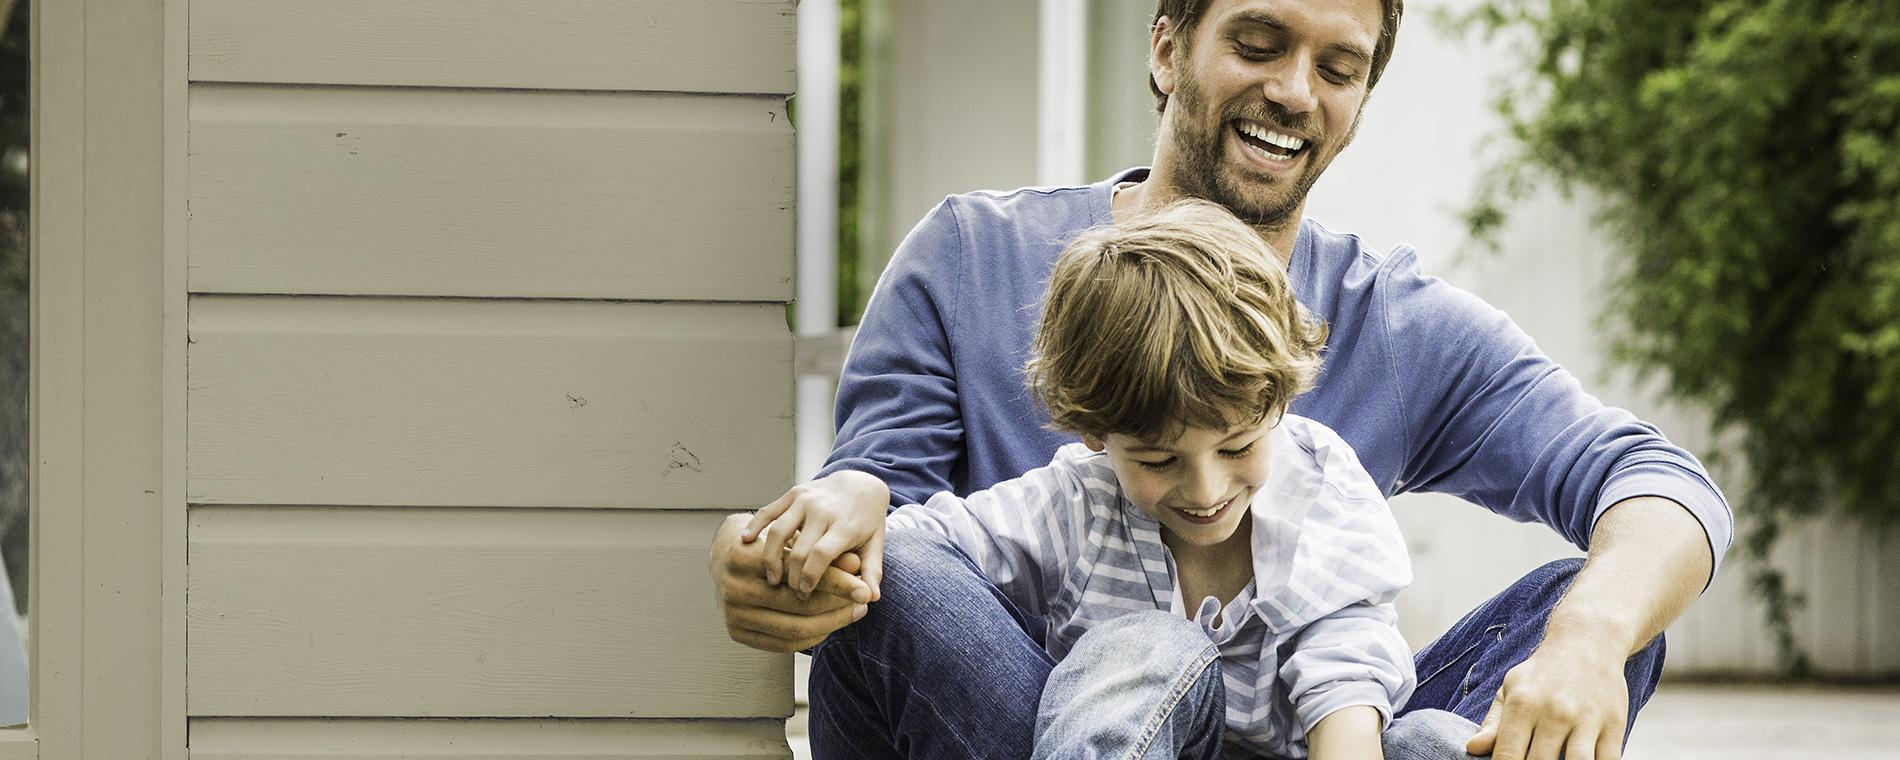 Father and son enjoying homeowners protection